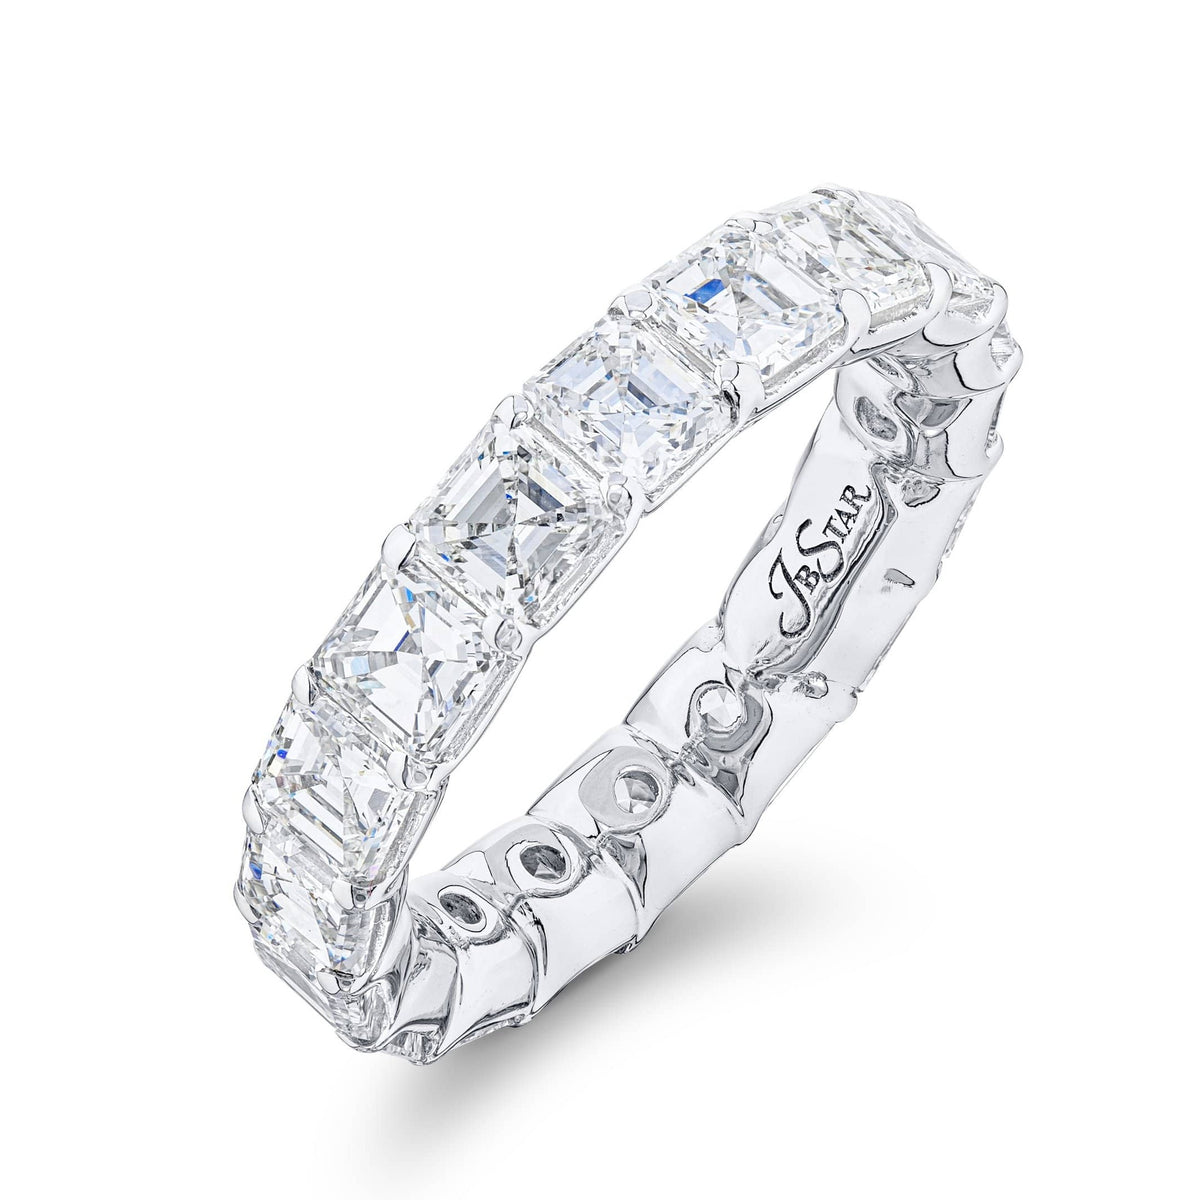 JB Star Platinum Assher Cut Diamond Eternity Band